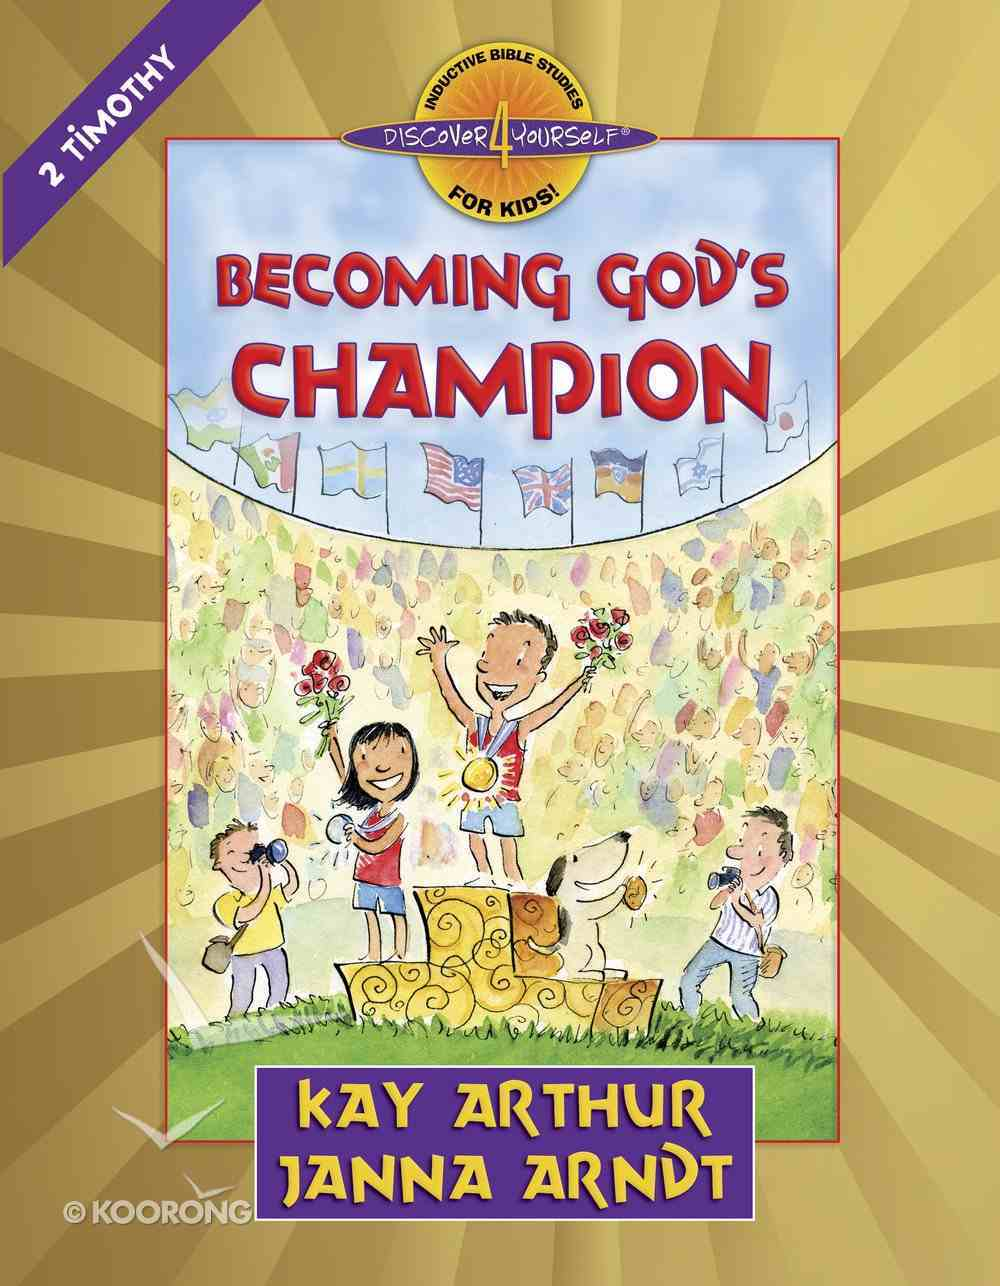 Becoming God's Champion (Discover For Yourself Bible Studies Series) eBook